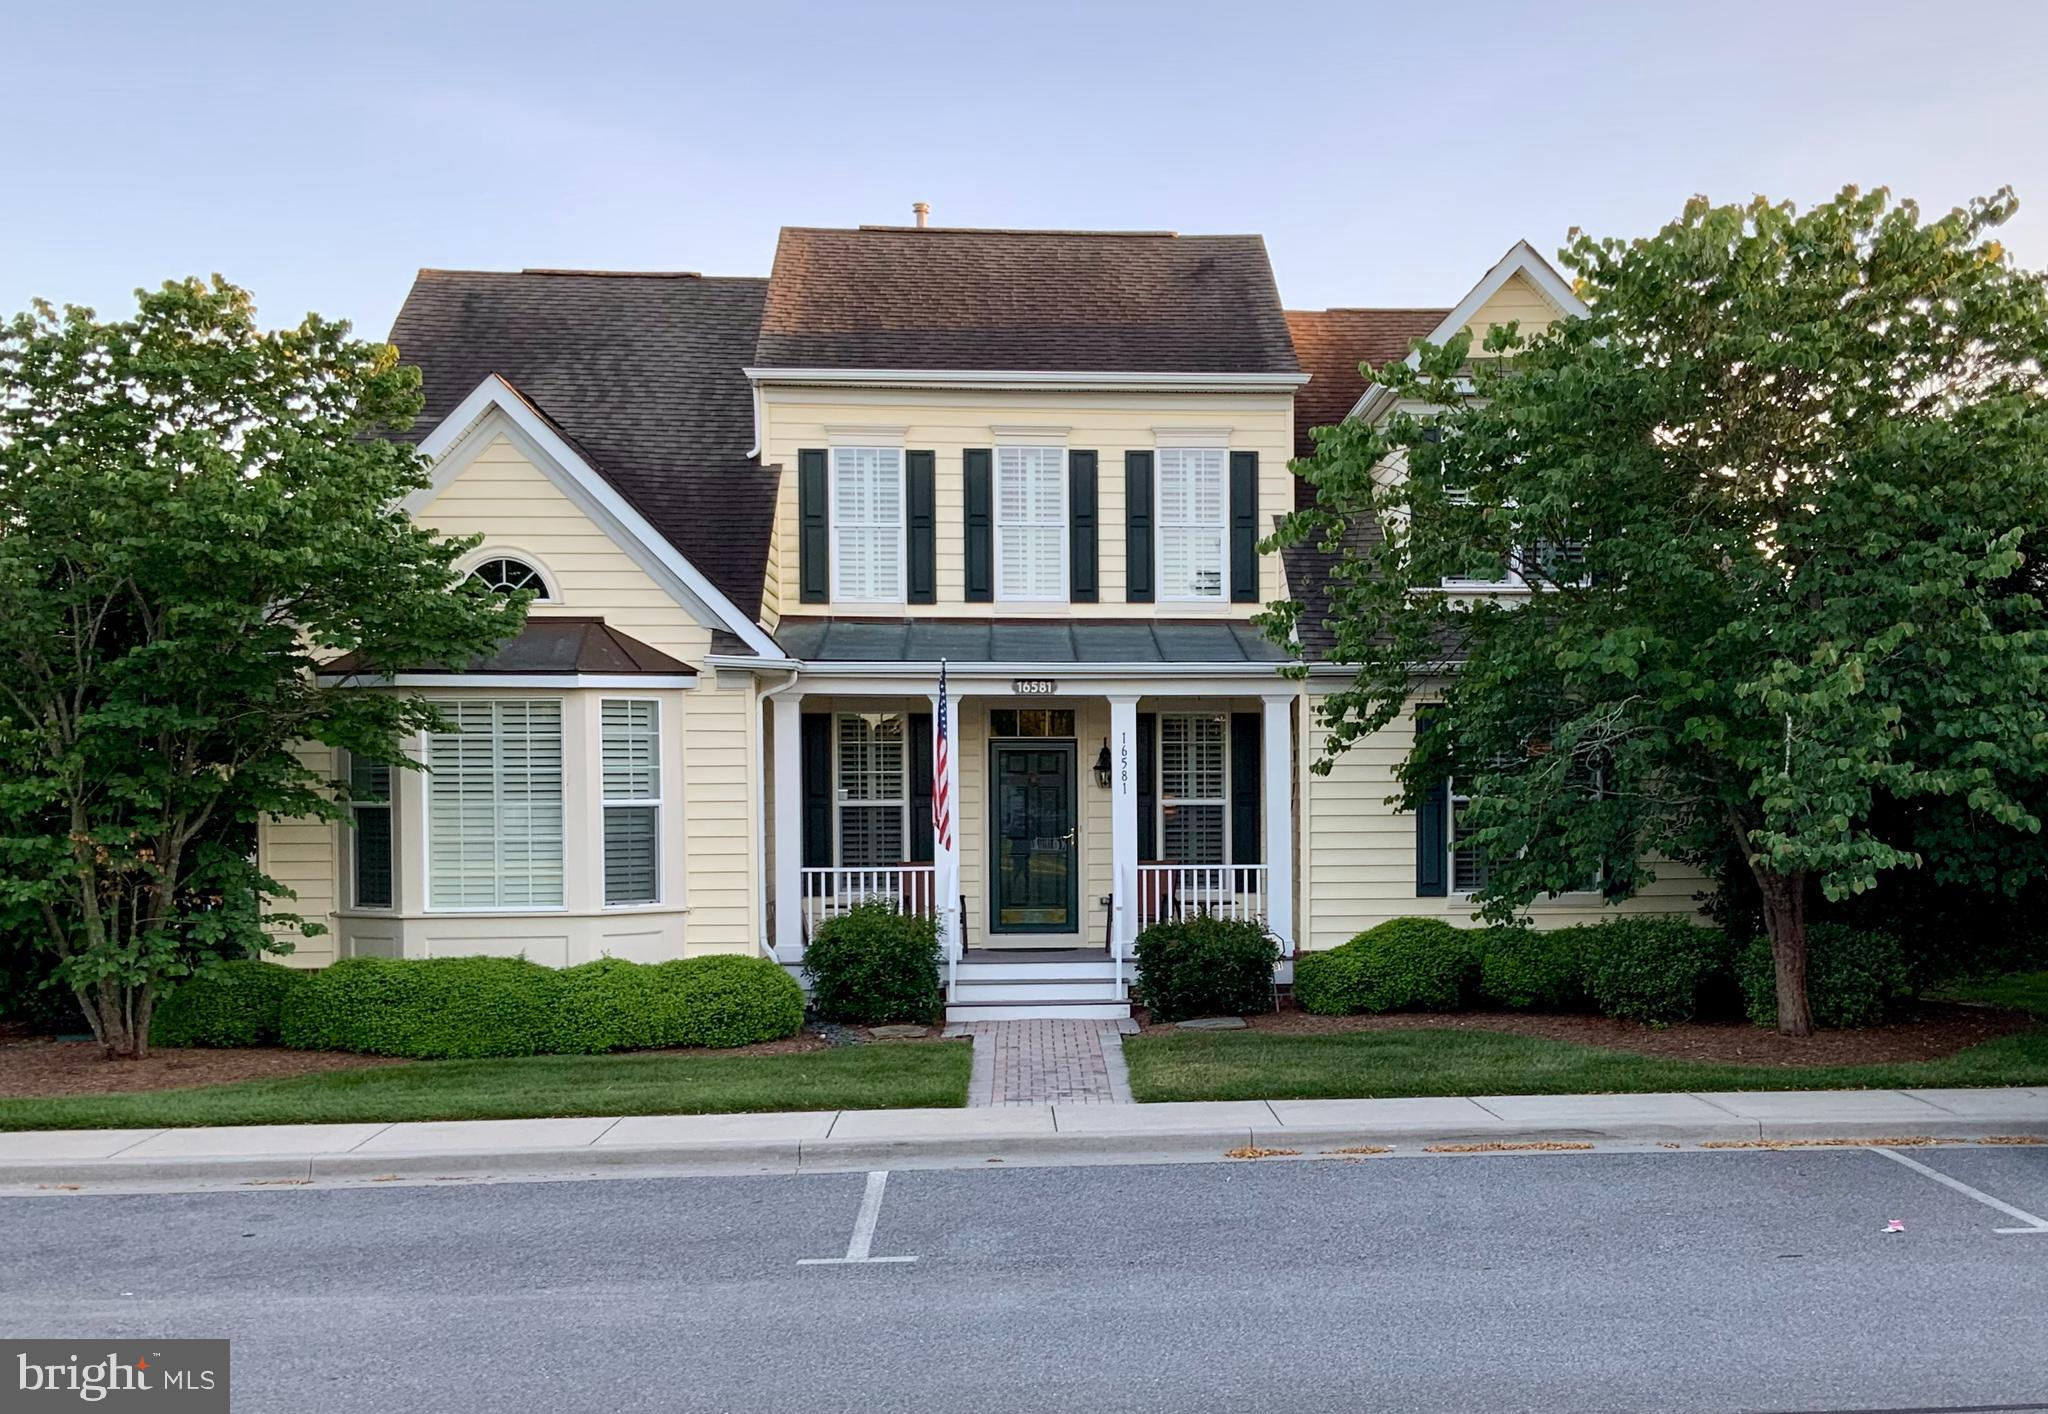 PICTURE PERFECT! The Berkeley floor plan with all the options (see attached floor plan) makes this home perfect for entertaining & relaxing with plenty of living space including a formal dining room, sunroom, first floor owner's suite with sitting area, luxe en-suite bath & large walk-in closet with custom shelving, spacious second floor loft / office, and more. Other highlights include plantation shutters throughout, hardwood floors on entire first floor, oak cabinets, granite counters & updated appliances in the kitchen, and more! Great outdoor space including three covered porches, paver deck & patio and detached 2 car garage with attic space. Ample storage found on second floor as well. The many community amenities: pool, tennis, playground, walking trail, fitness center, beautifully kept club house, and lawn care plus being just a short drive to the beaches and downtown Lewes, Rehoboth, and Milton all add to the value of living in this great neighborhood.  Must see  this low maintenance living home, call today!